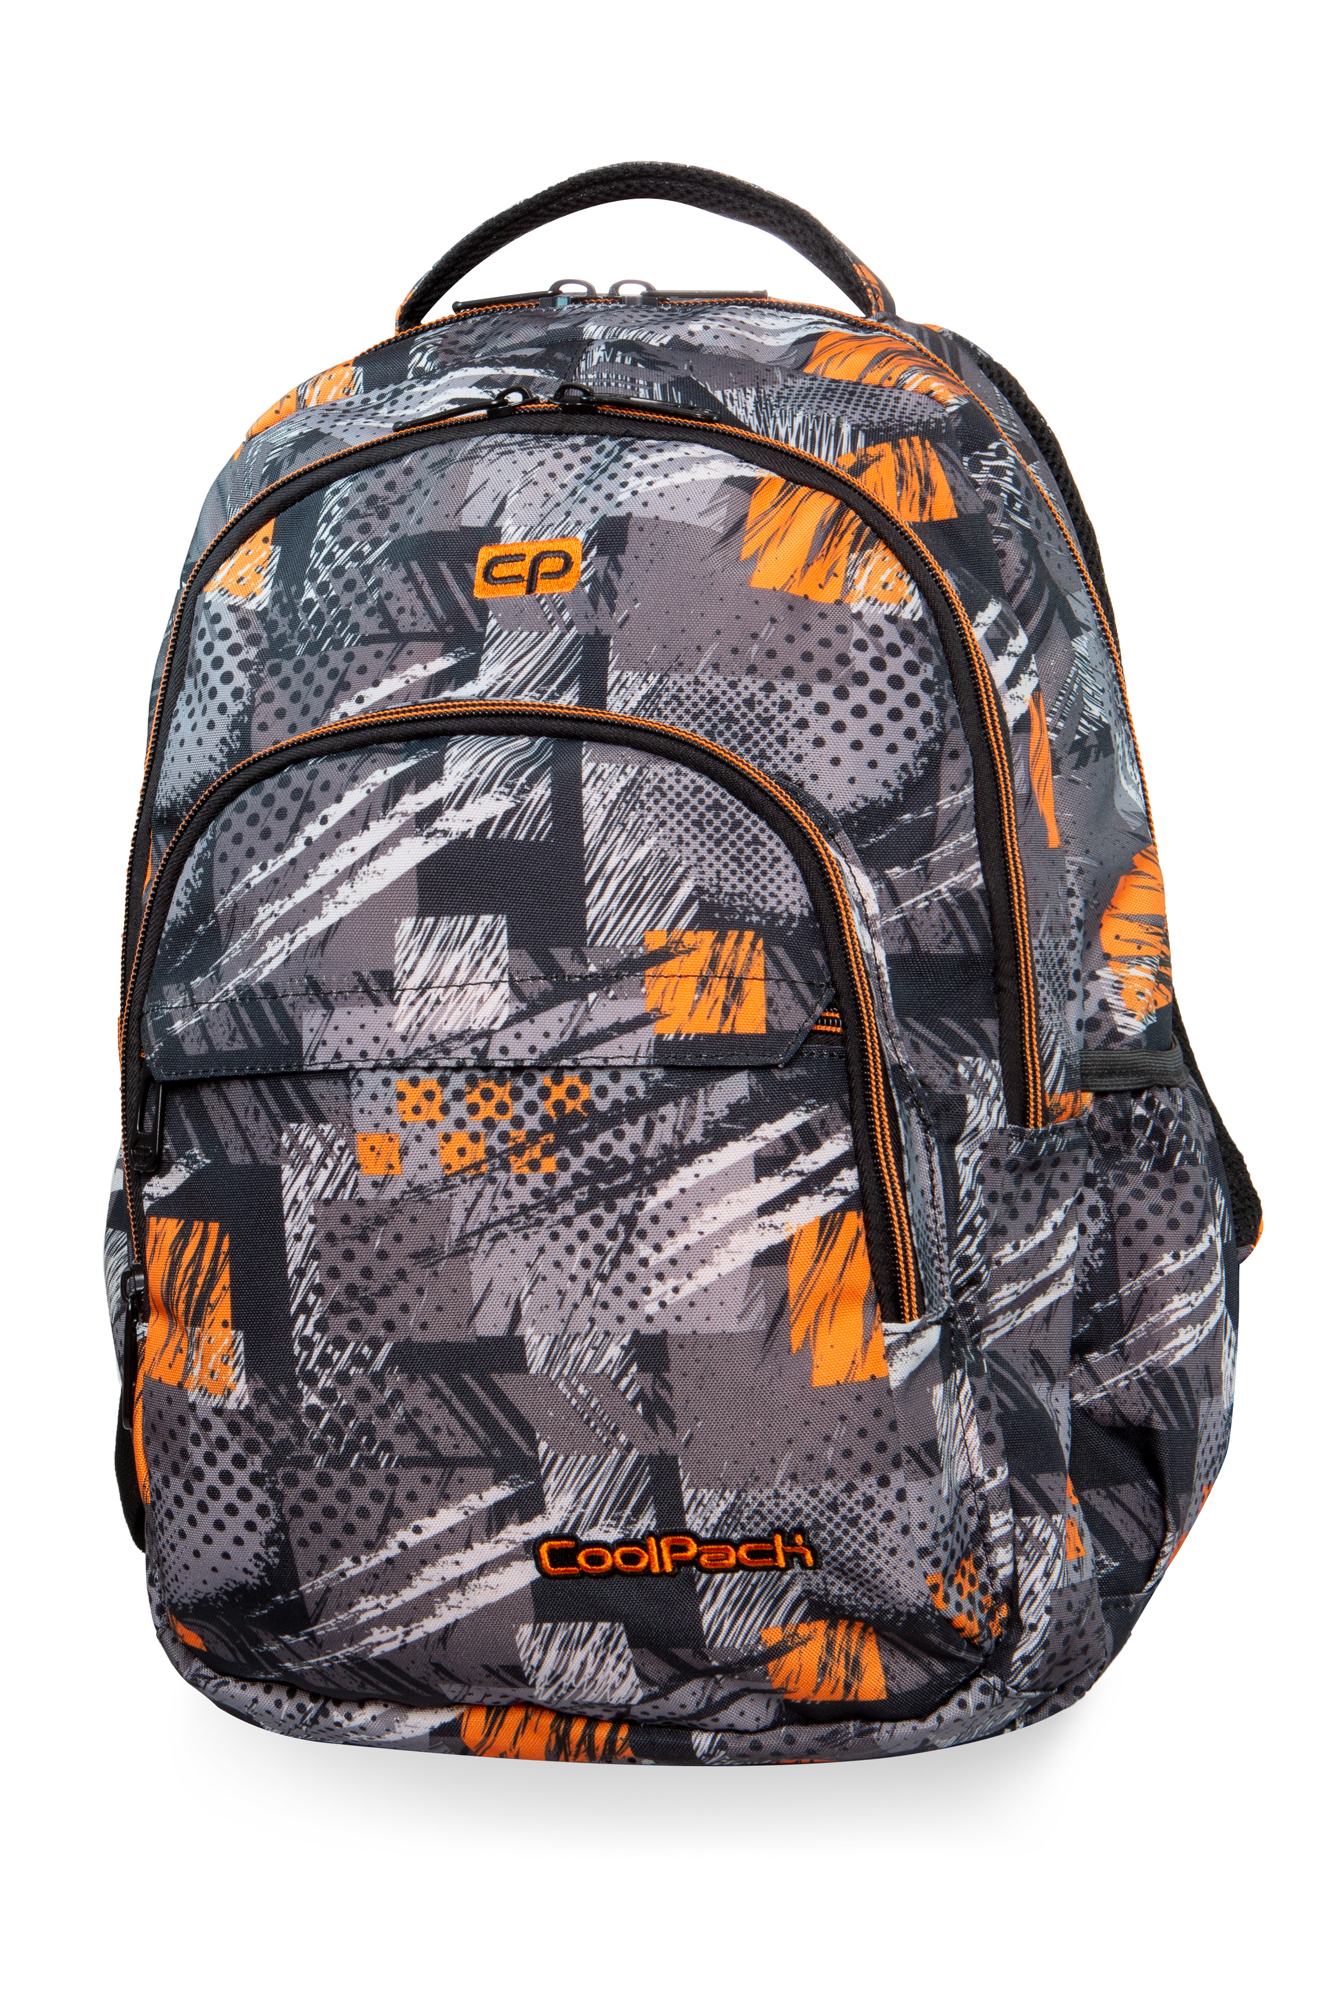 Coolpack - basic plus - youth backpack - desert storm